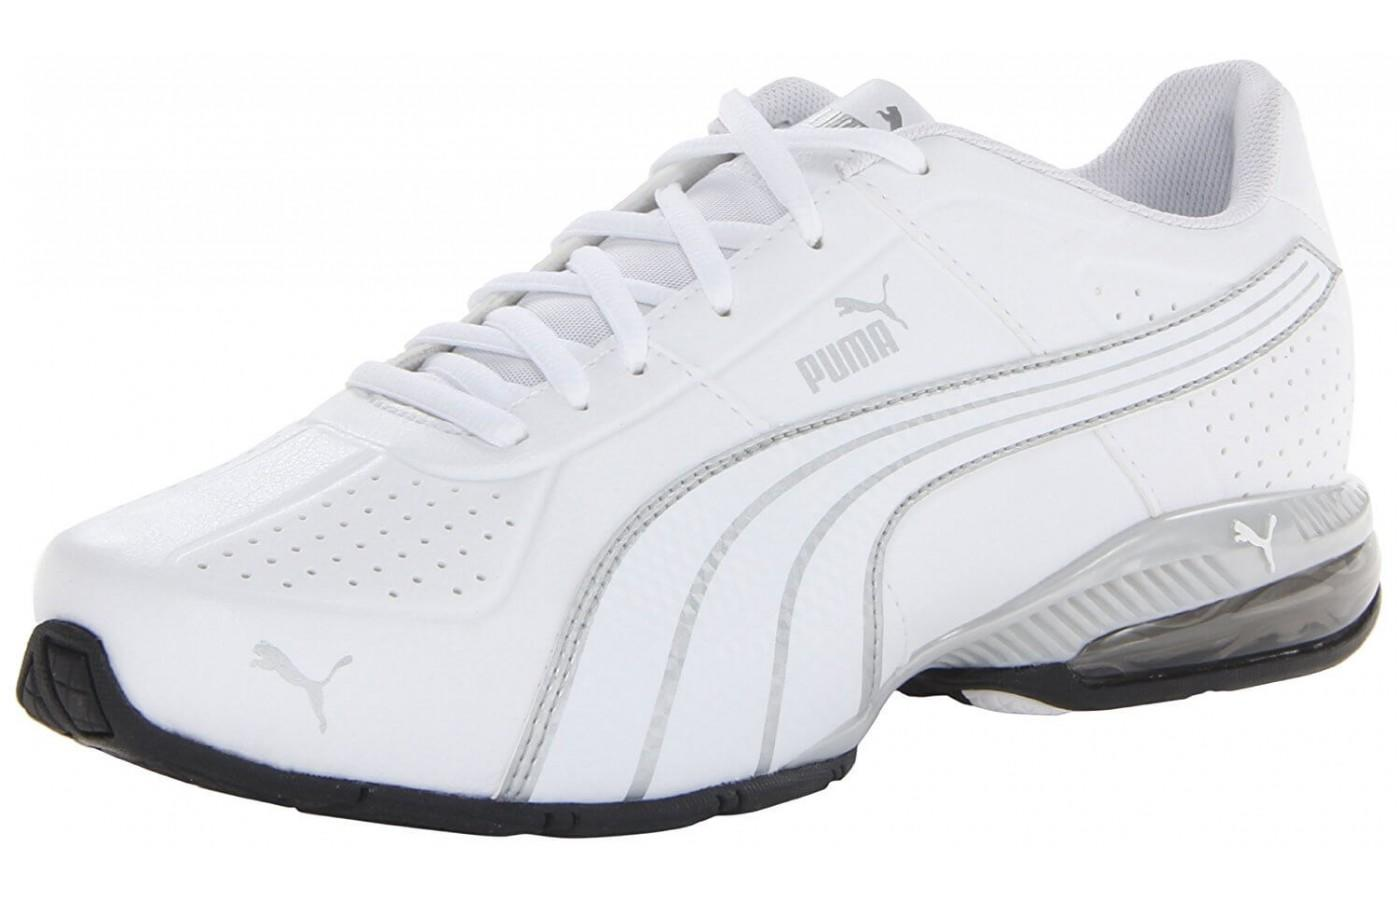 The Cell Surin Cross Trainer Is A Great Entry Level Shoe For Beginning Runner